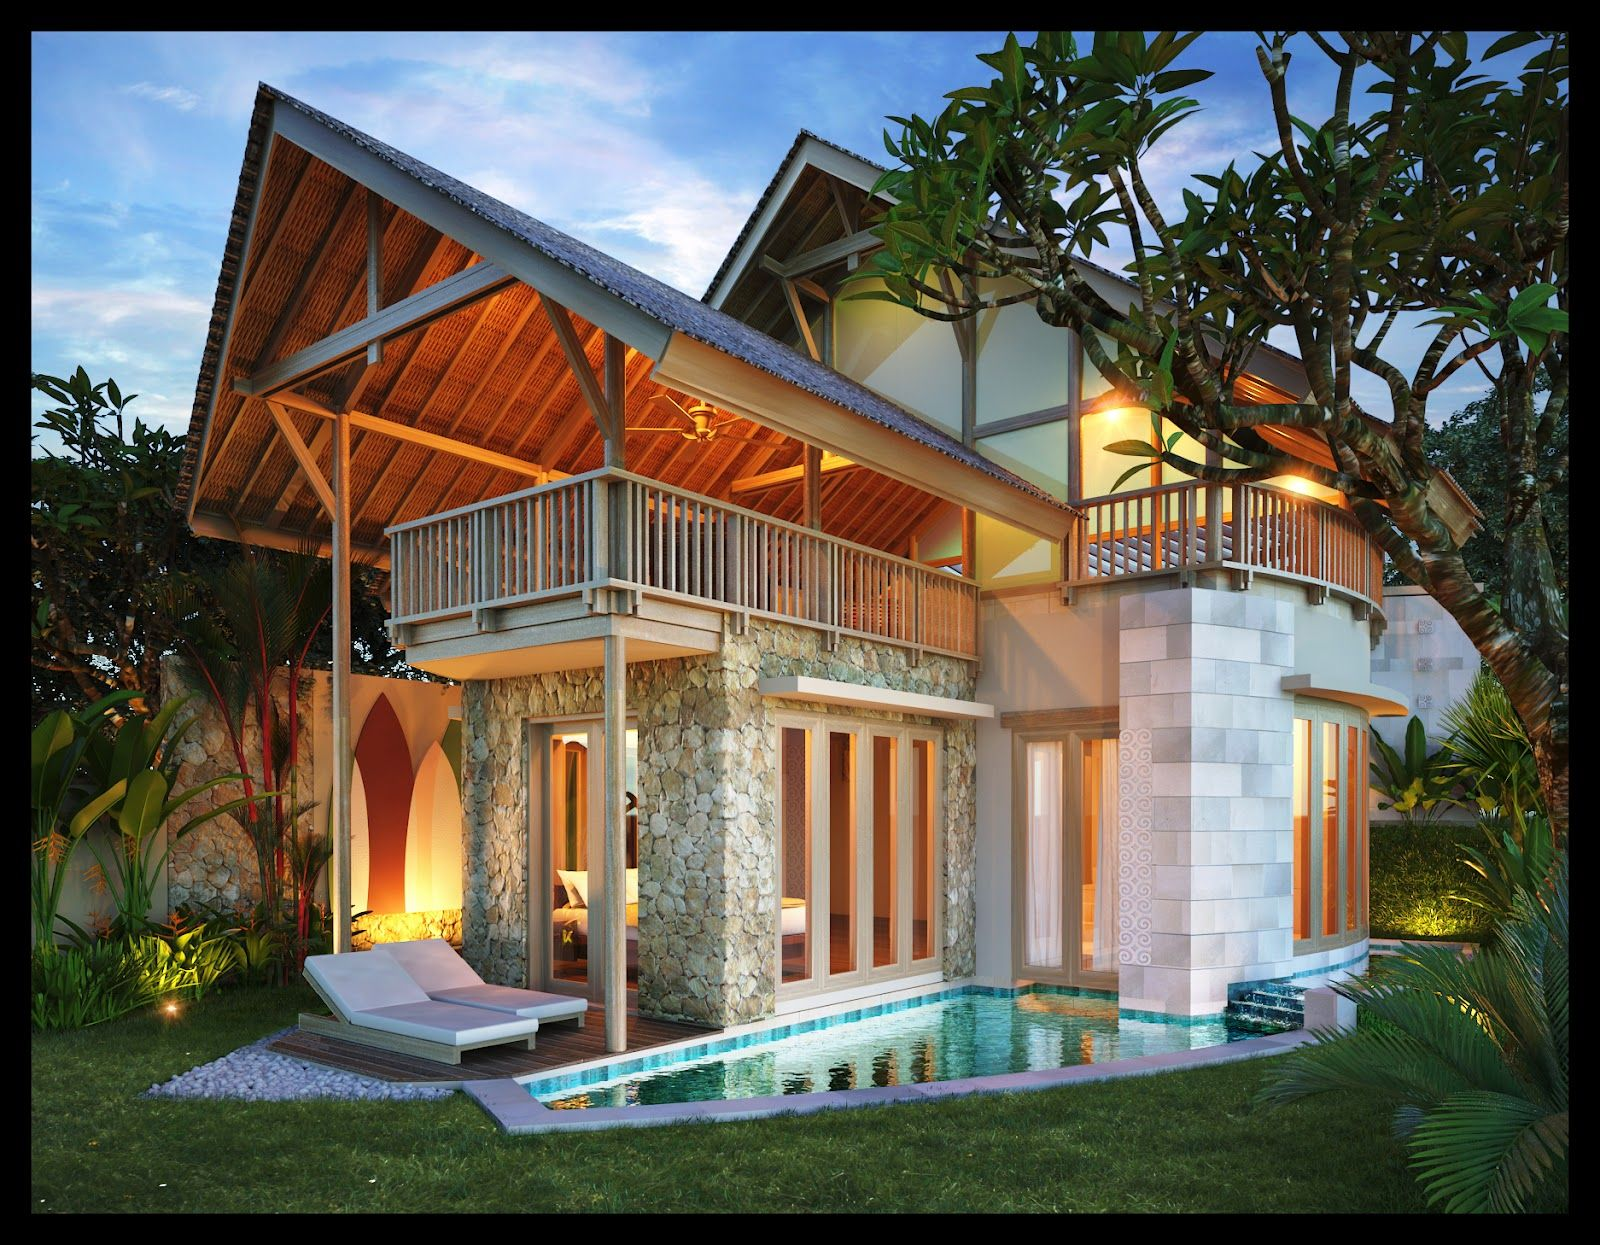 Balinese Houses Designs Home Design Ideas Inexpensive House Plans Beach House Design Beach House Plans Tropical House Design